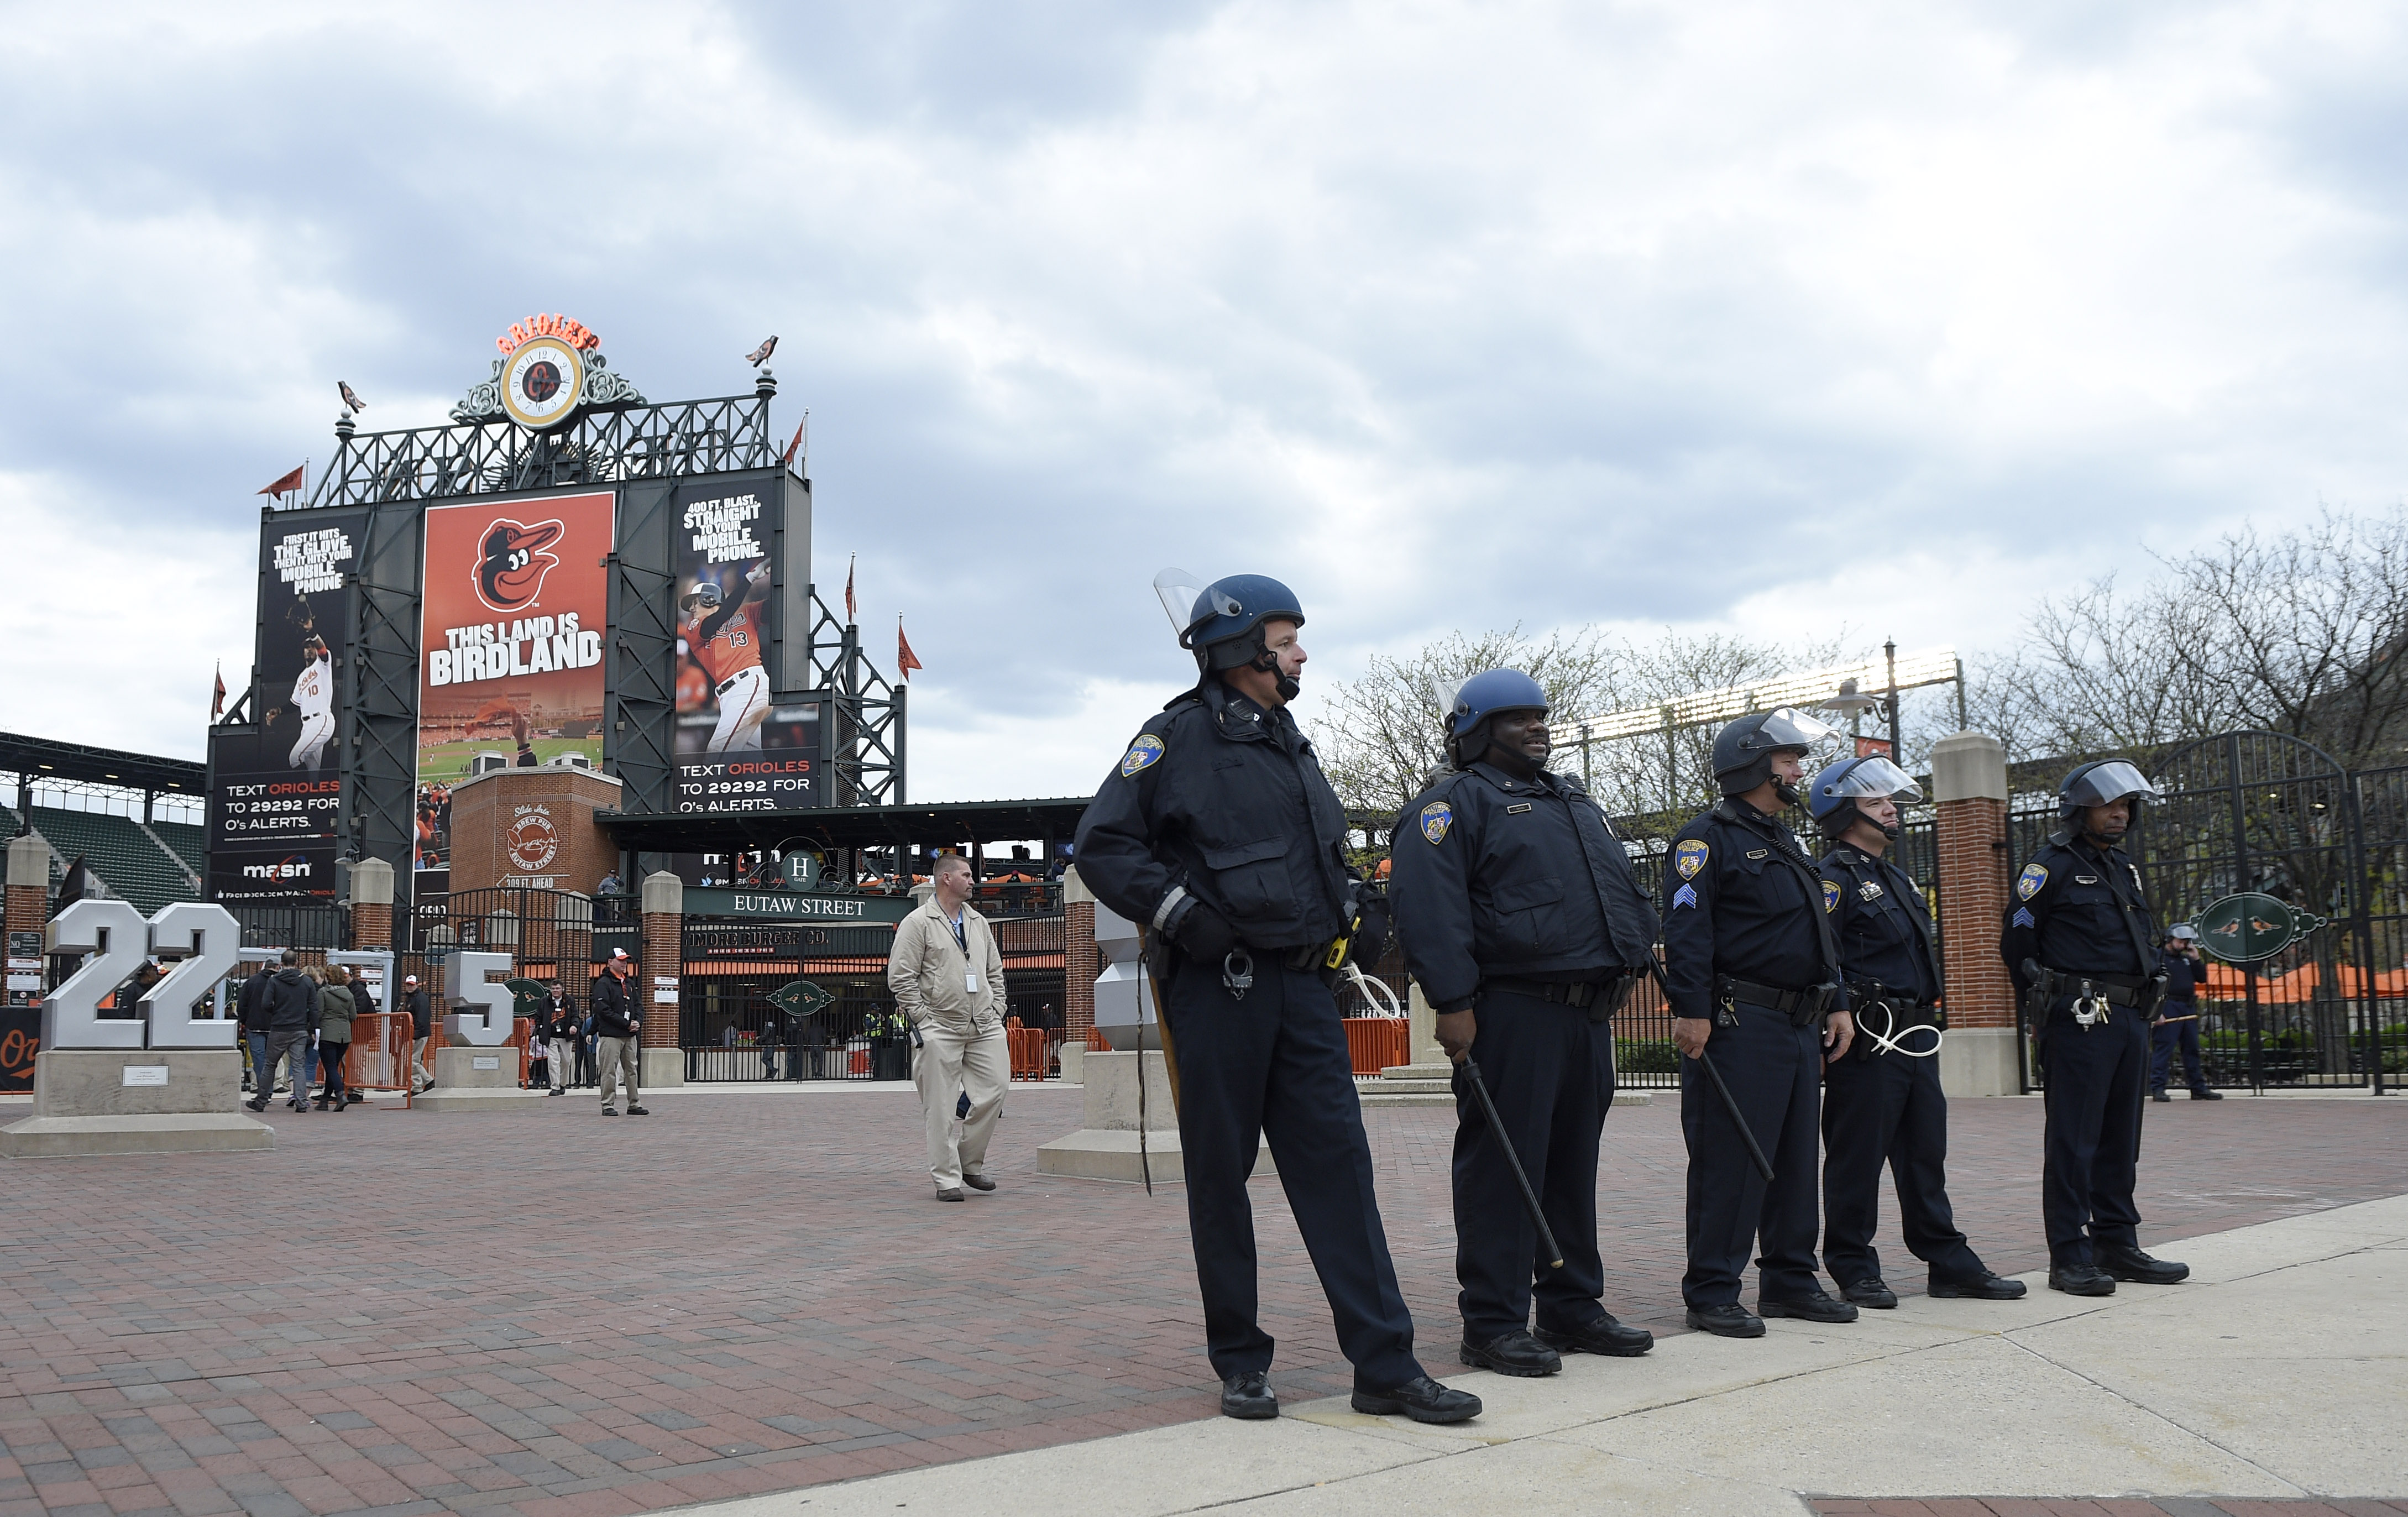 Baltimore police officers stand guard outside of Oriole Park at Camden Yards, Monday, April 27, 2015, in Baltimore. The baseball game between the Baltimore Orioles and the Chicago White Sox has been postponed. (AP Photo/Nick Wass)